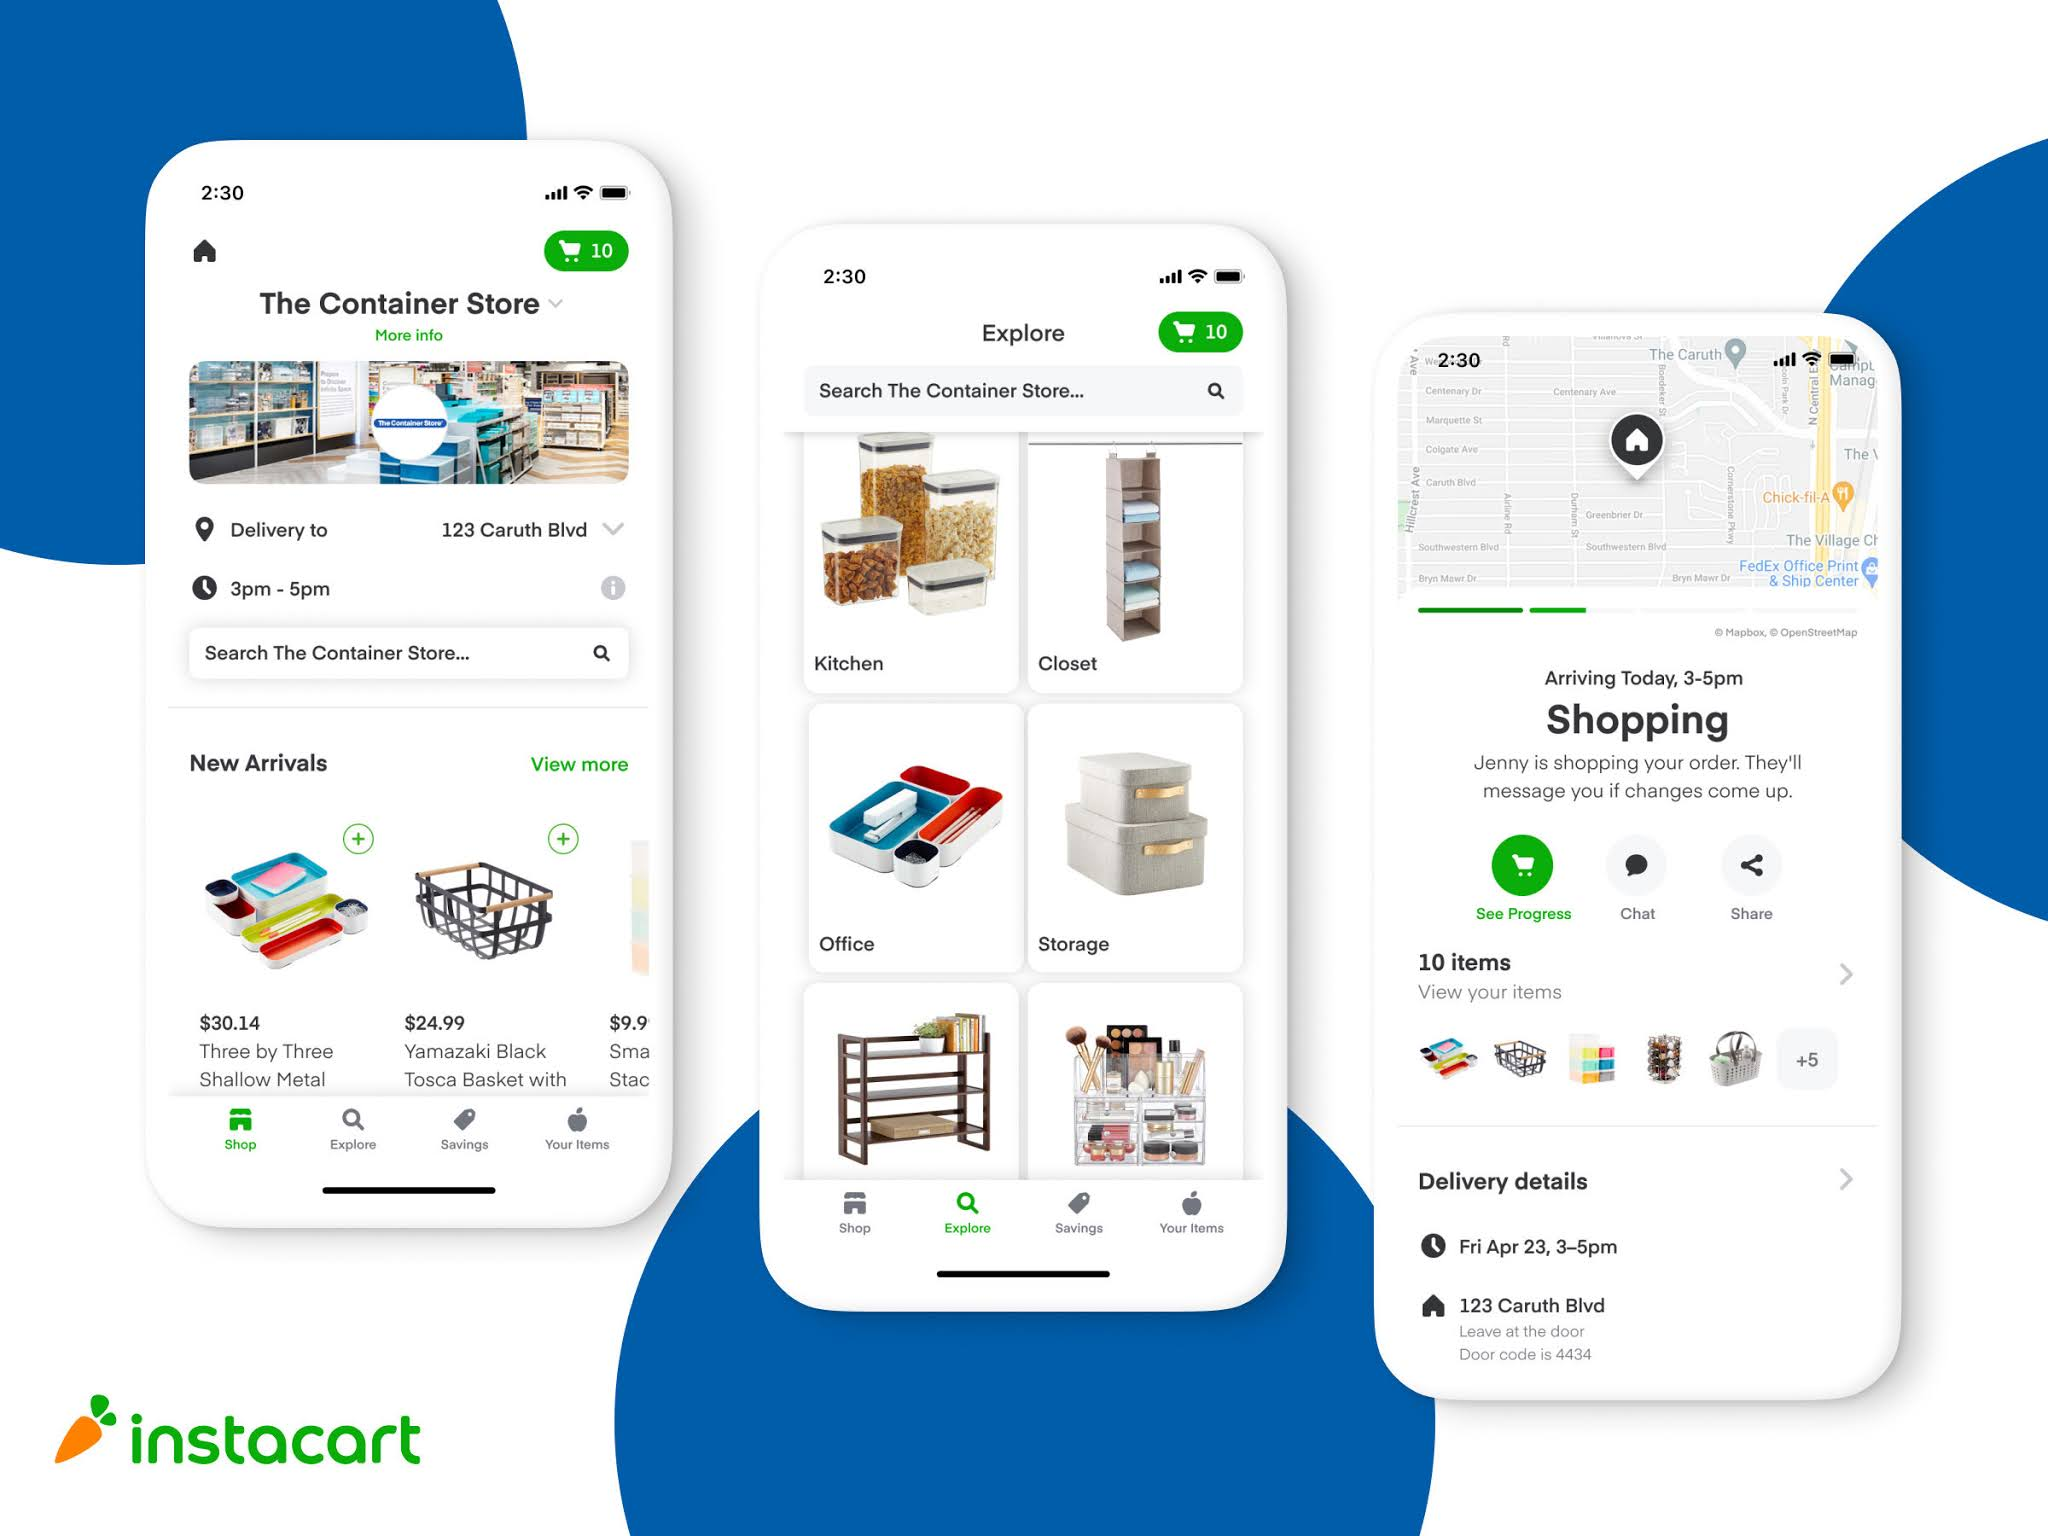 Instacart and The Container Store Partner to Launch Same-day Delivery